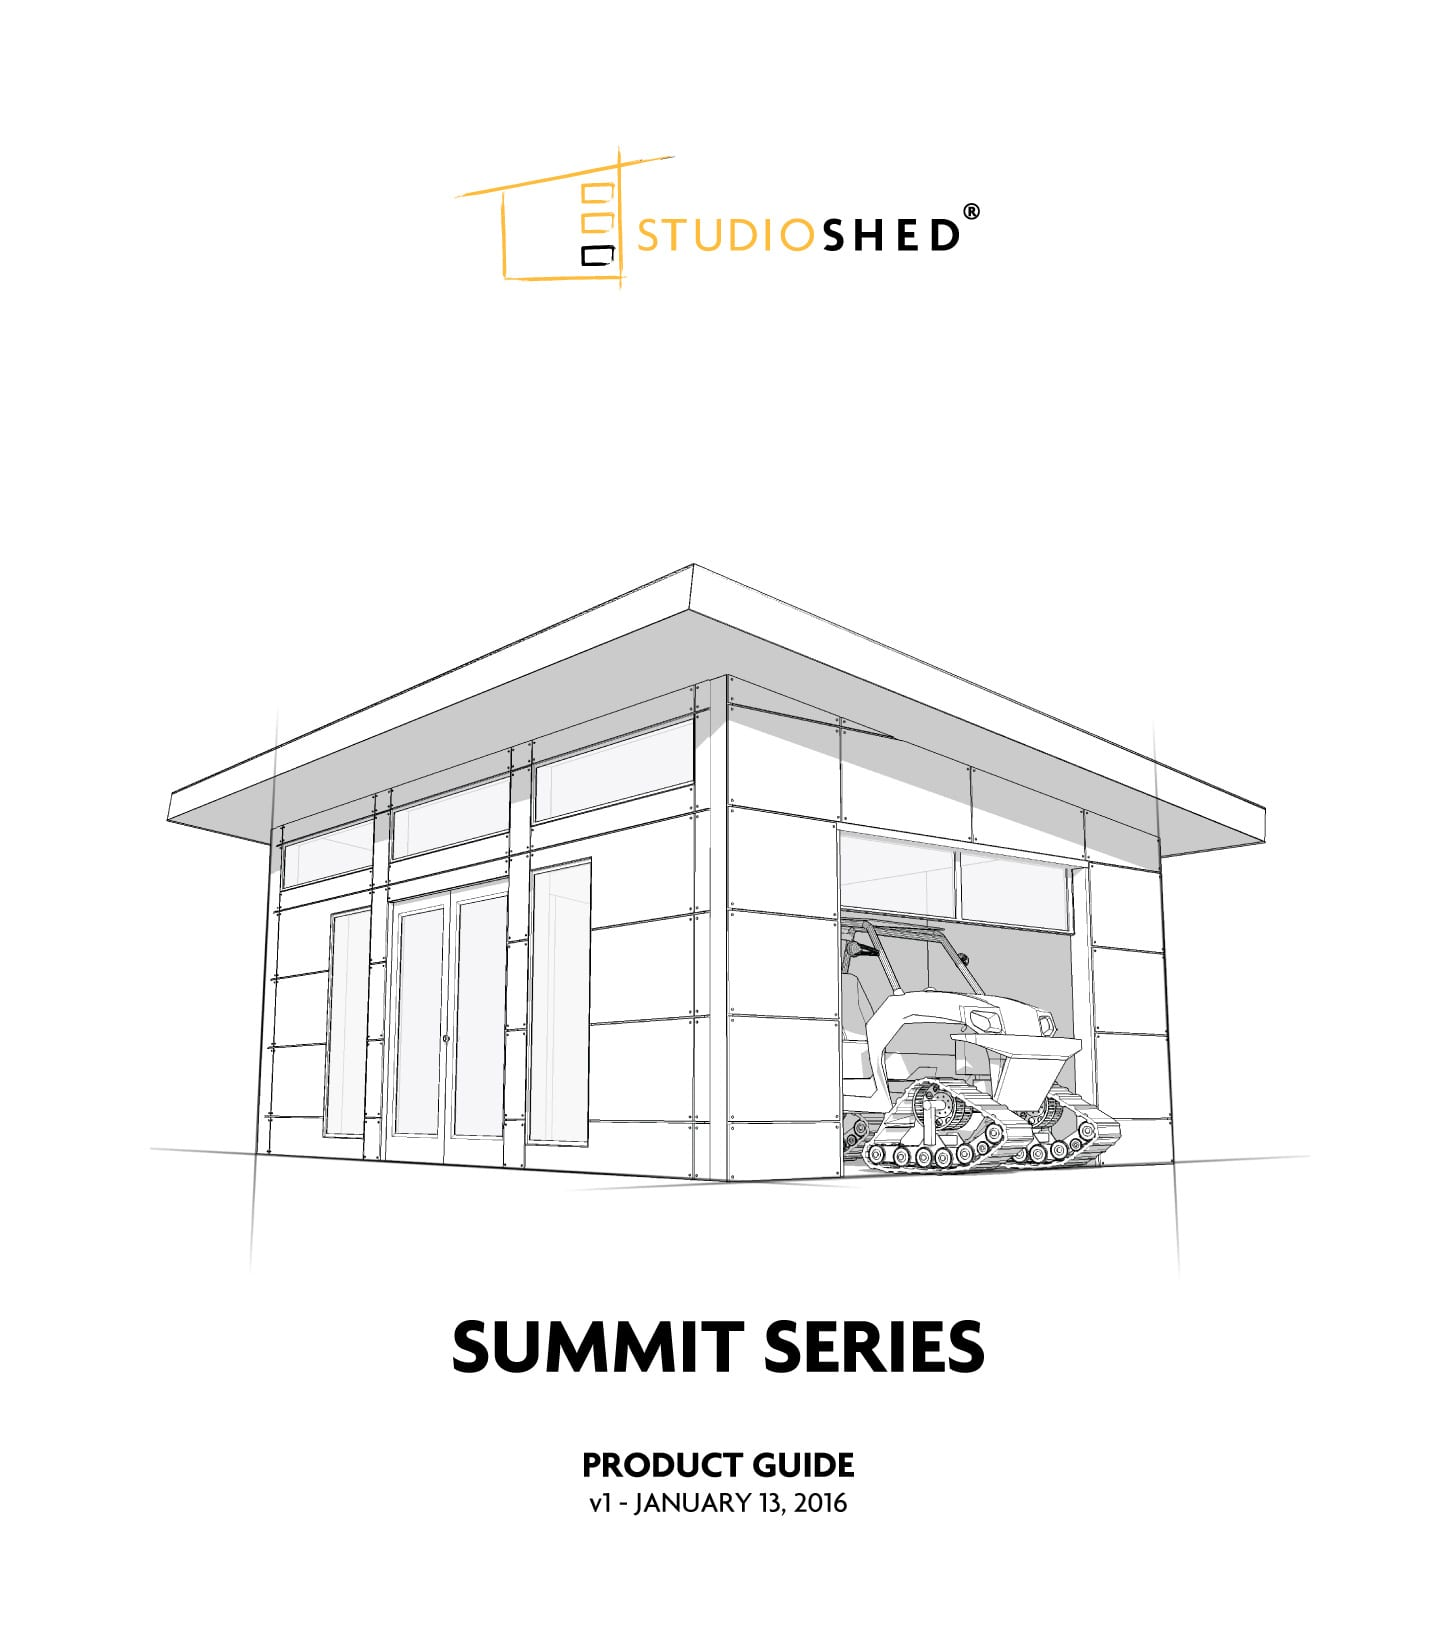 Summit Series Product Guide